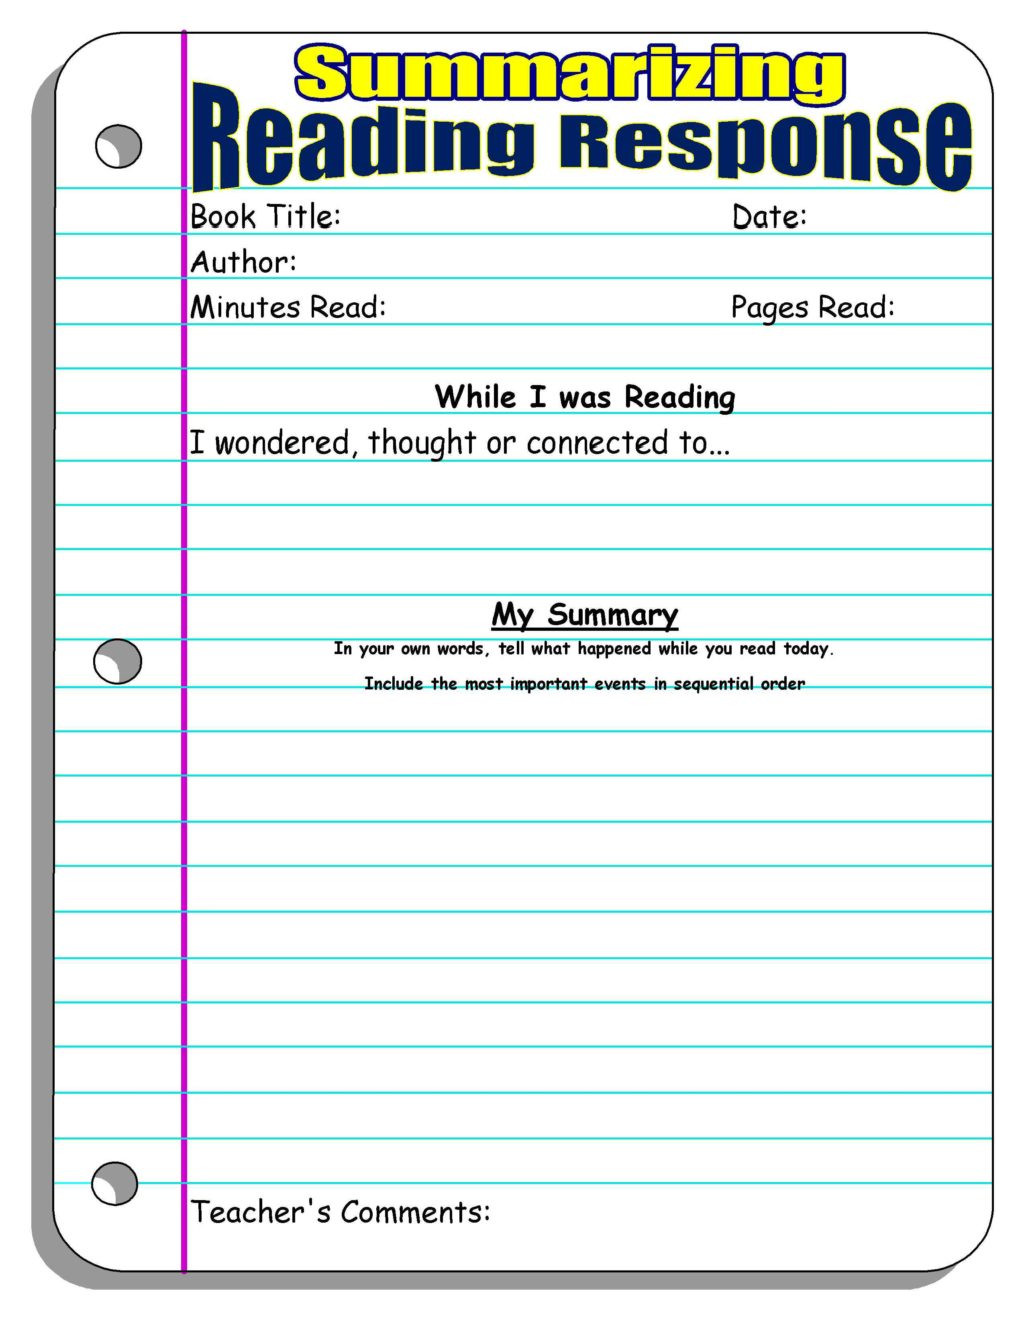 Writing A Summary Worksheet Math Worksheet Reading Response Summarizing Stunning